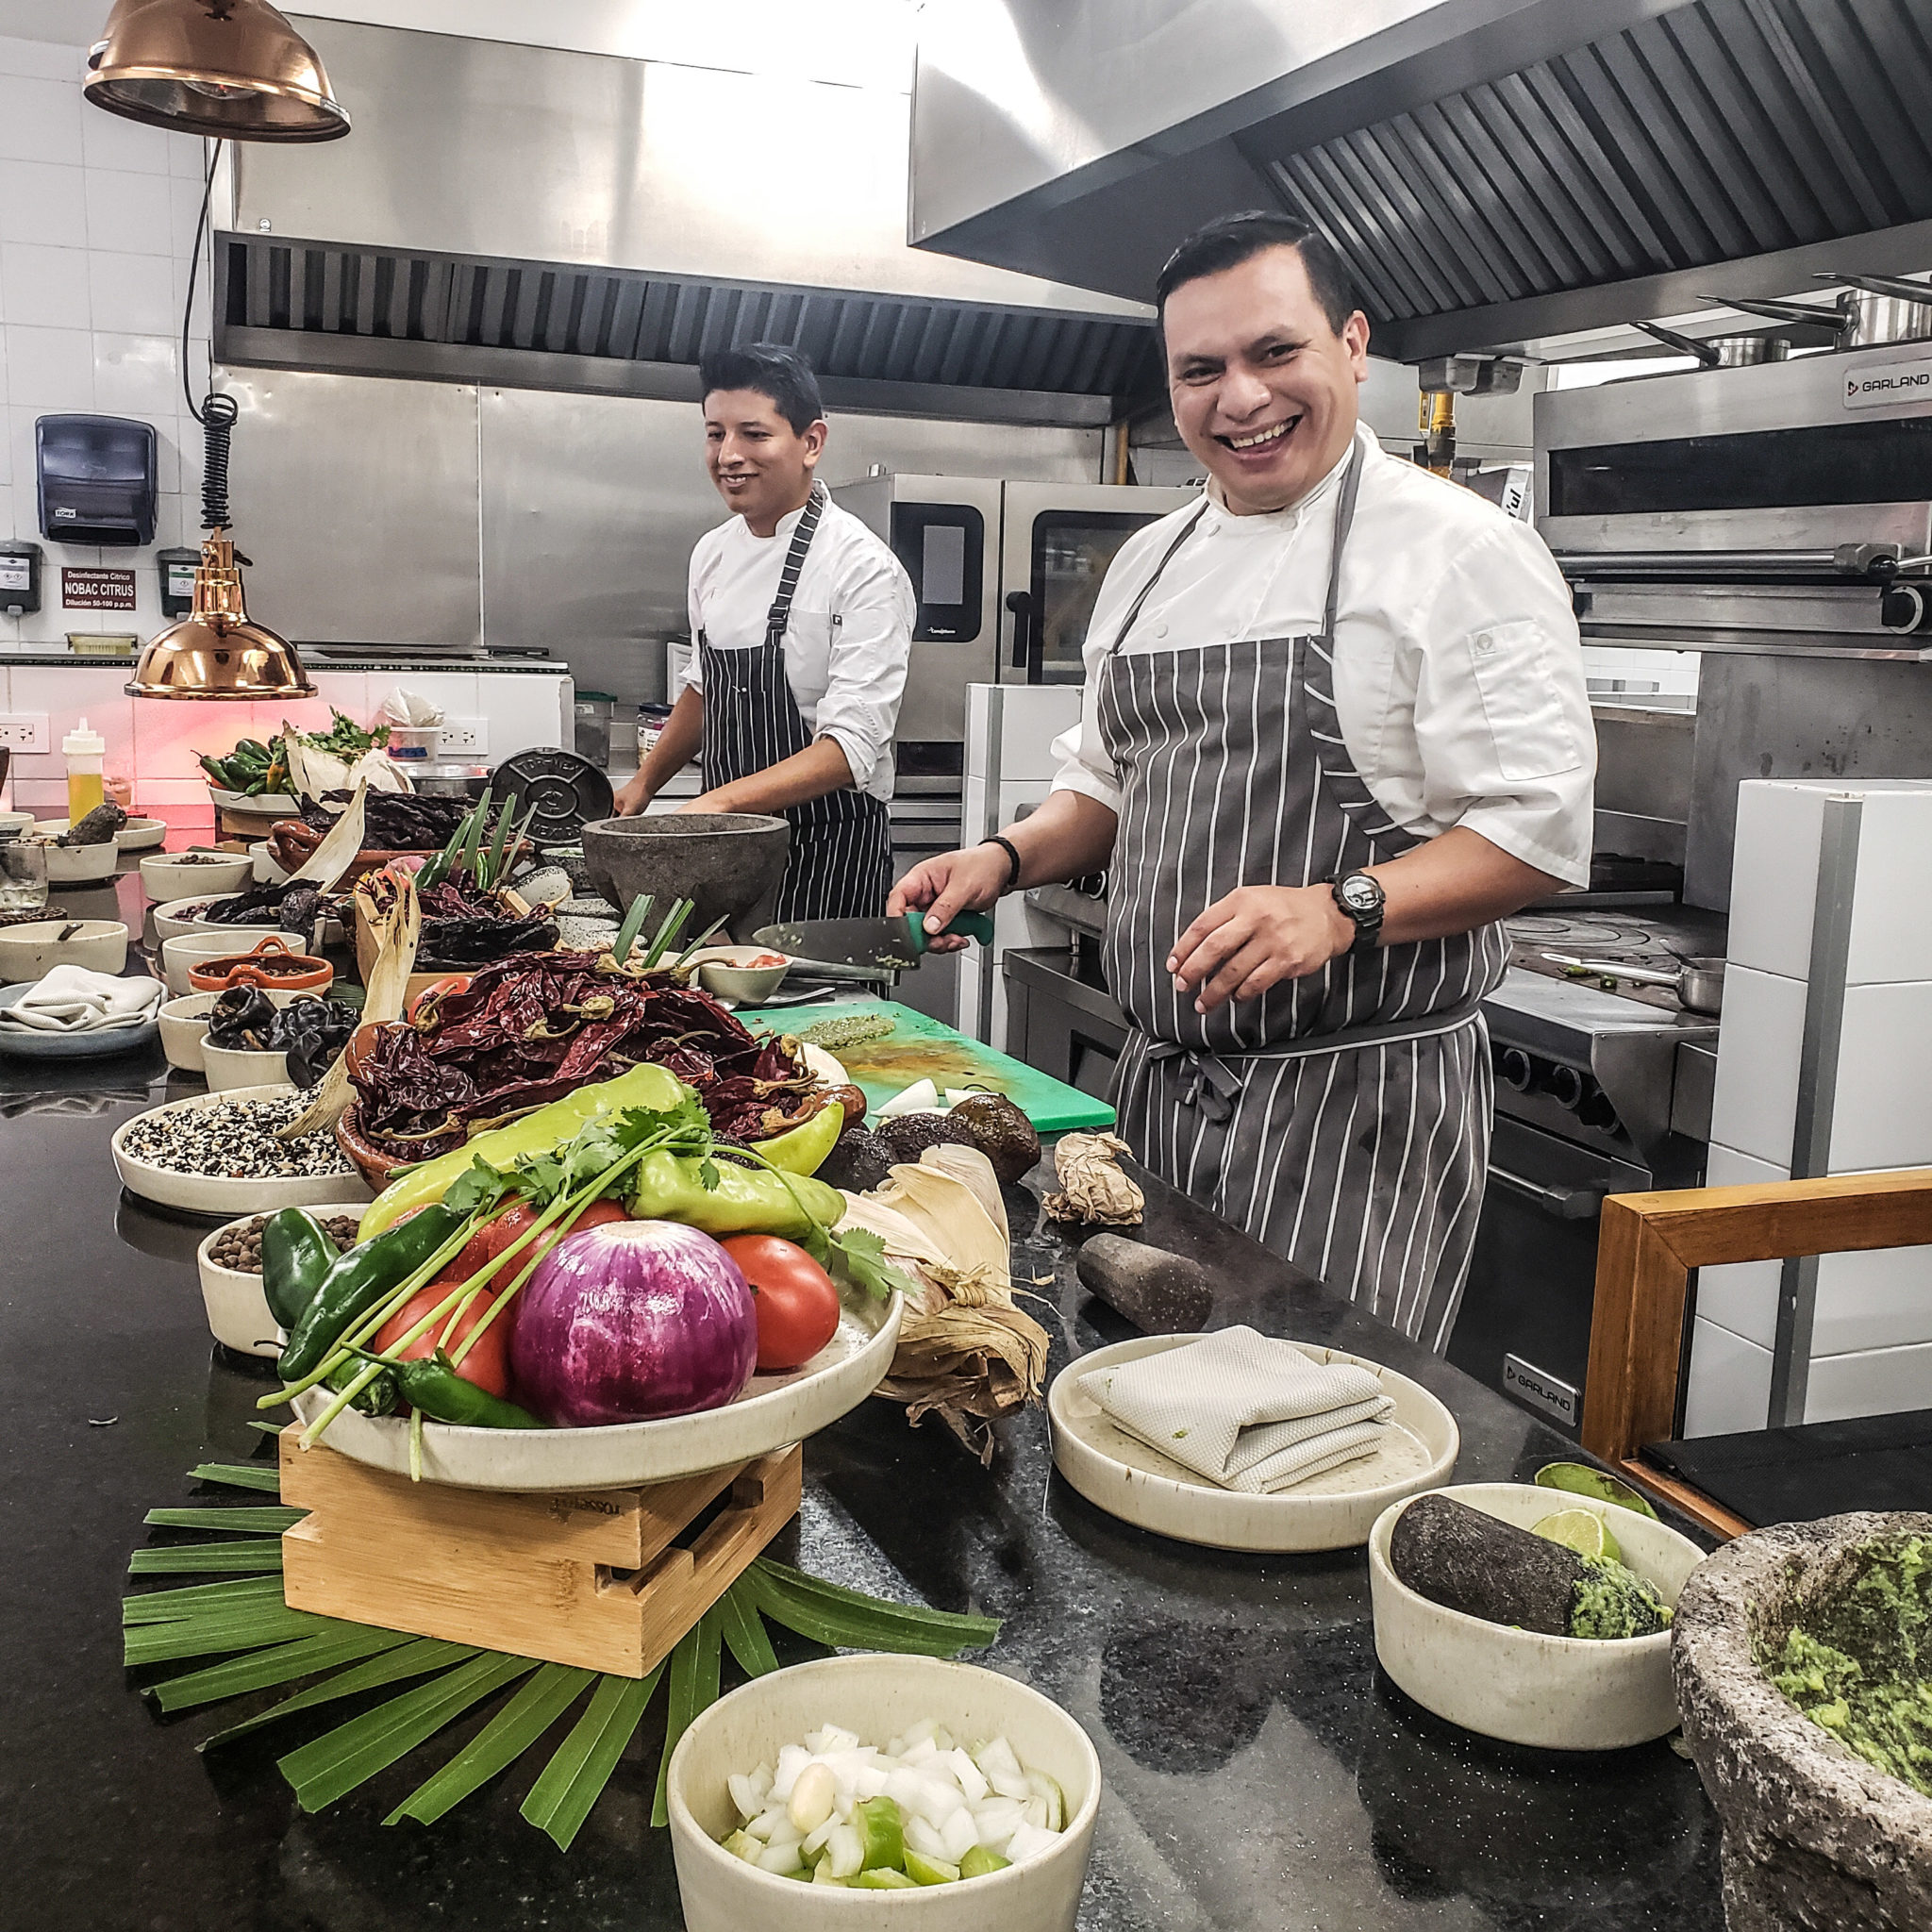 Chable Maroma Resort - Quintana Roo - Playa Del Carmen - Playa Maroma - Cooking Class